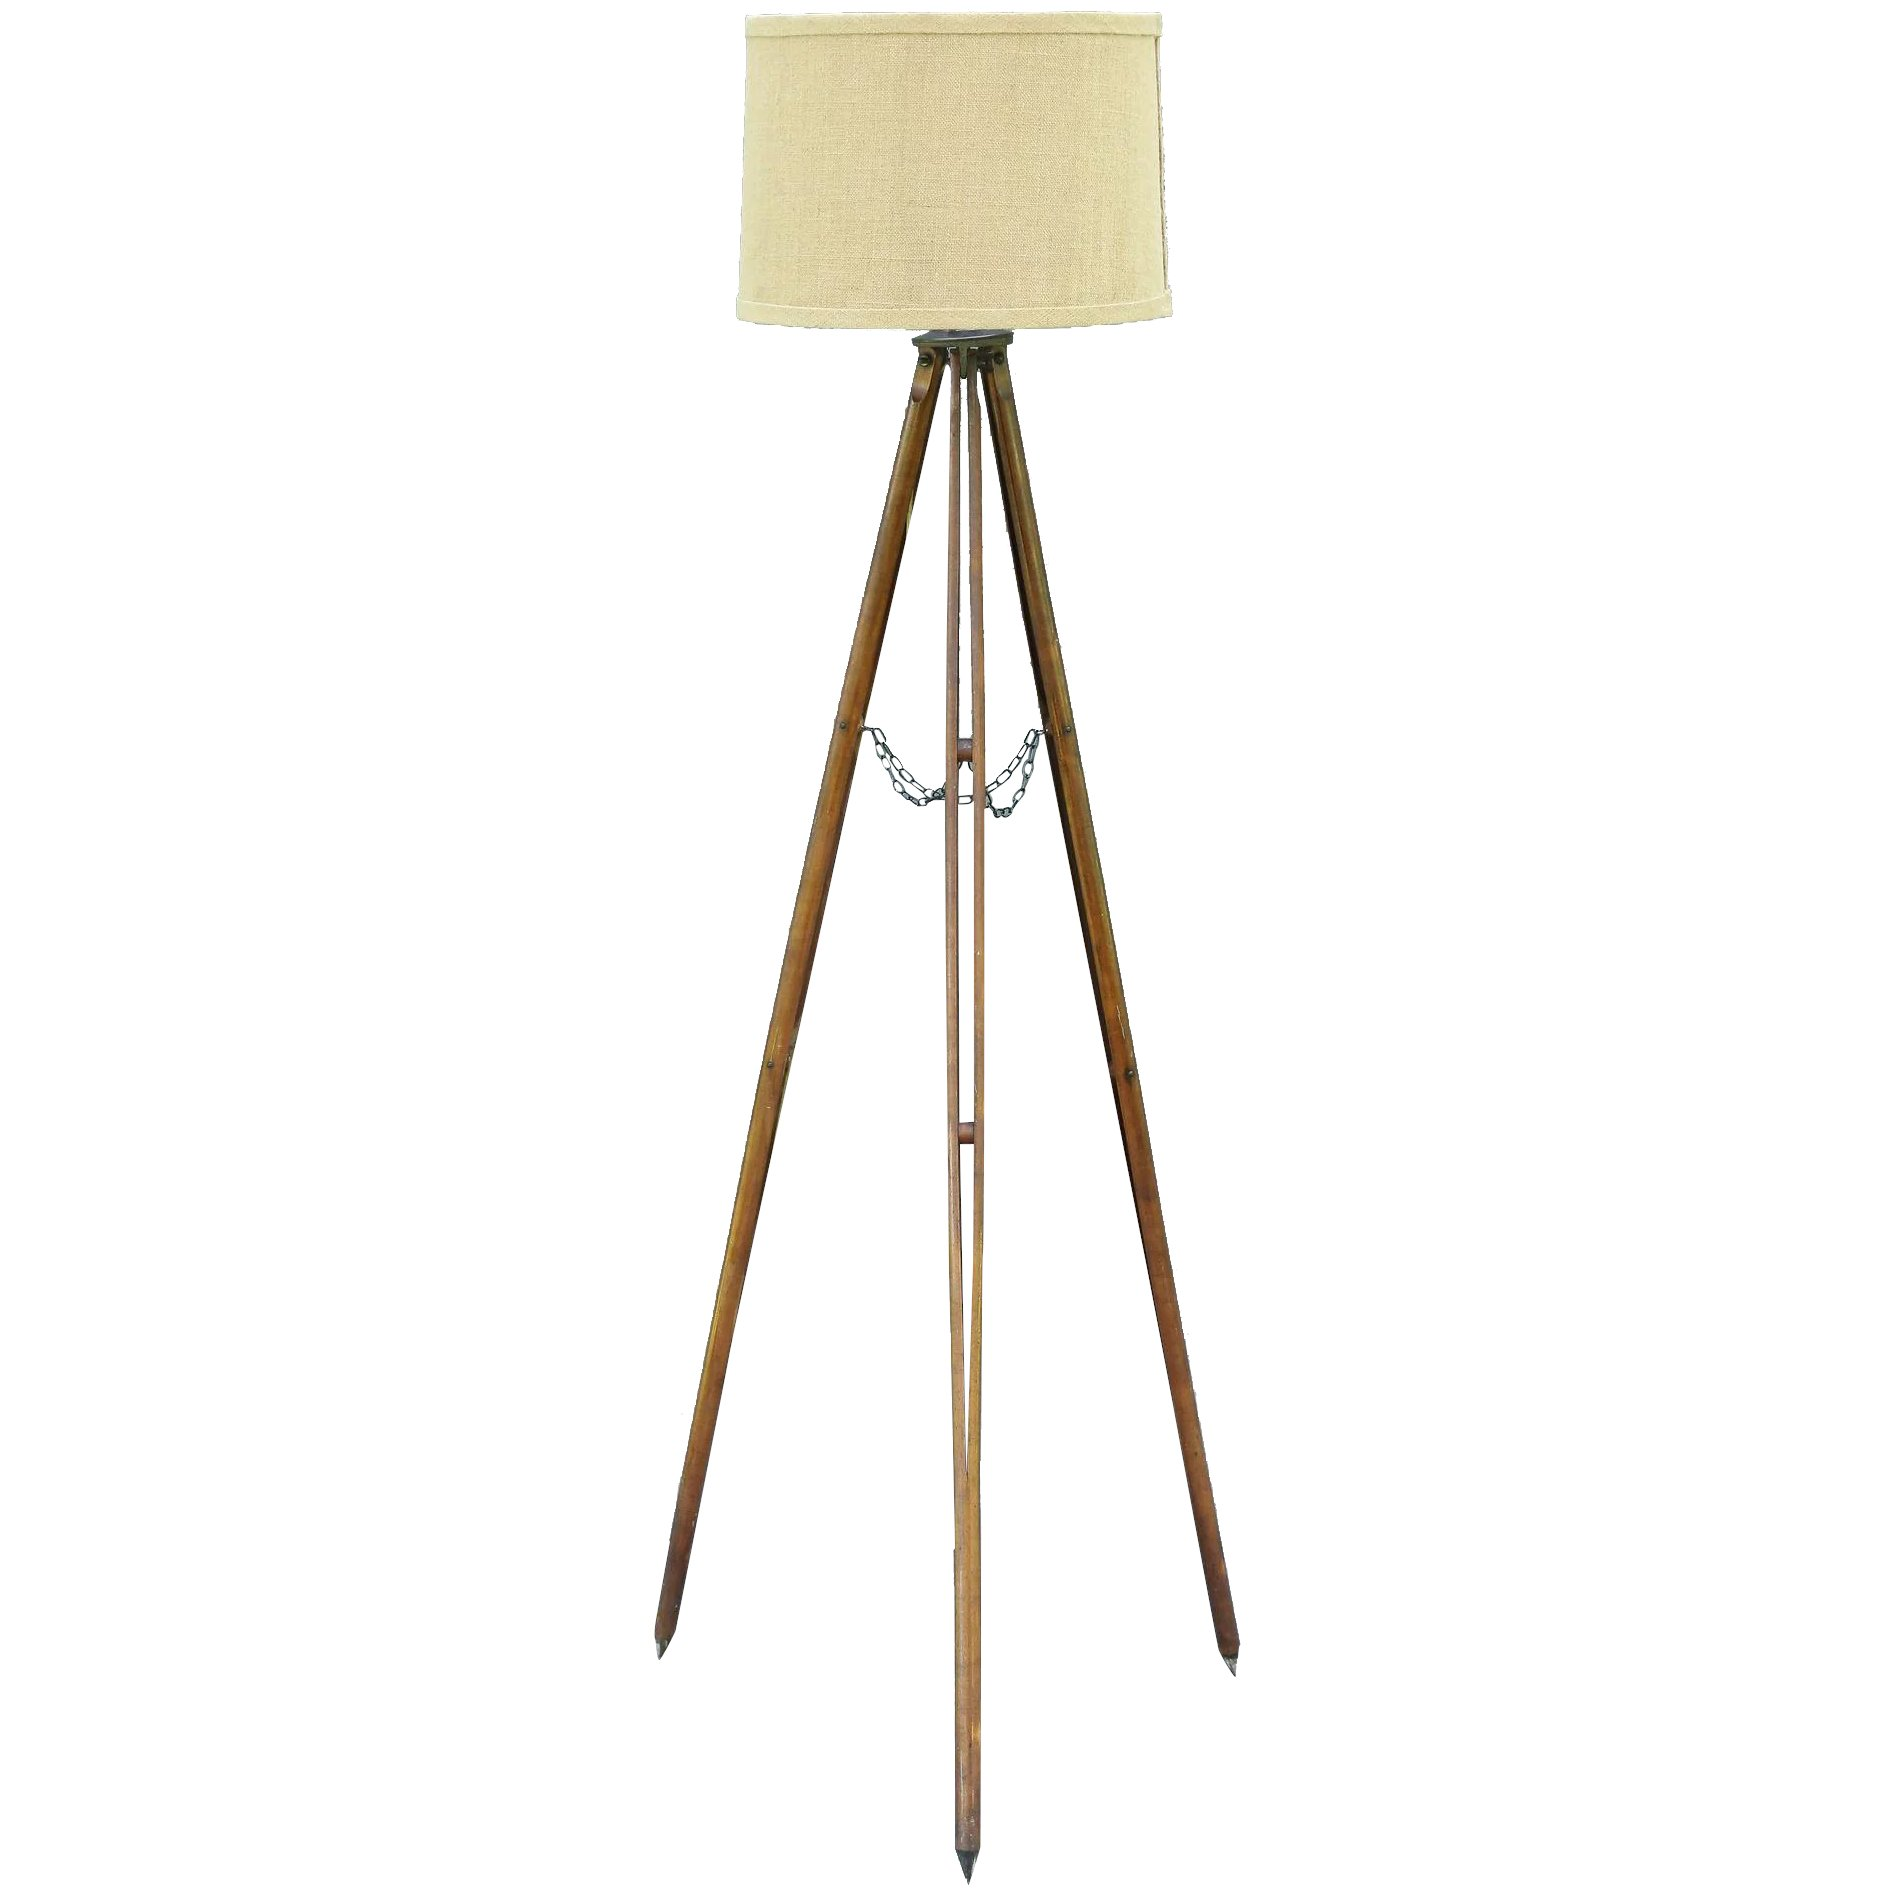 Surveyor39s tripod floor lamp american wood faded rose for Surveyors floor lamp wood